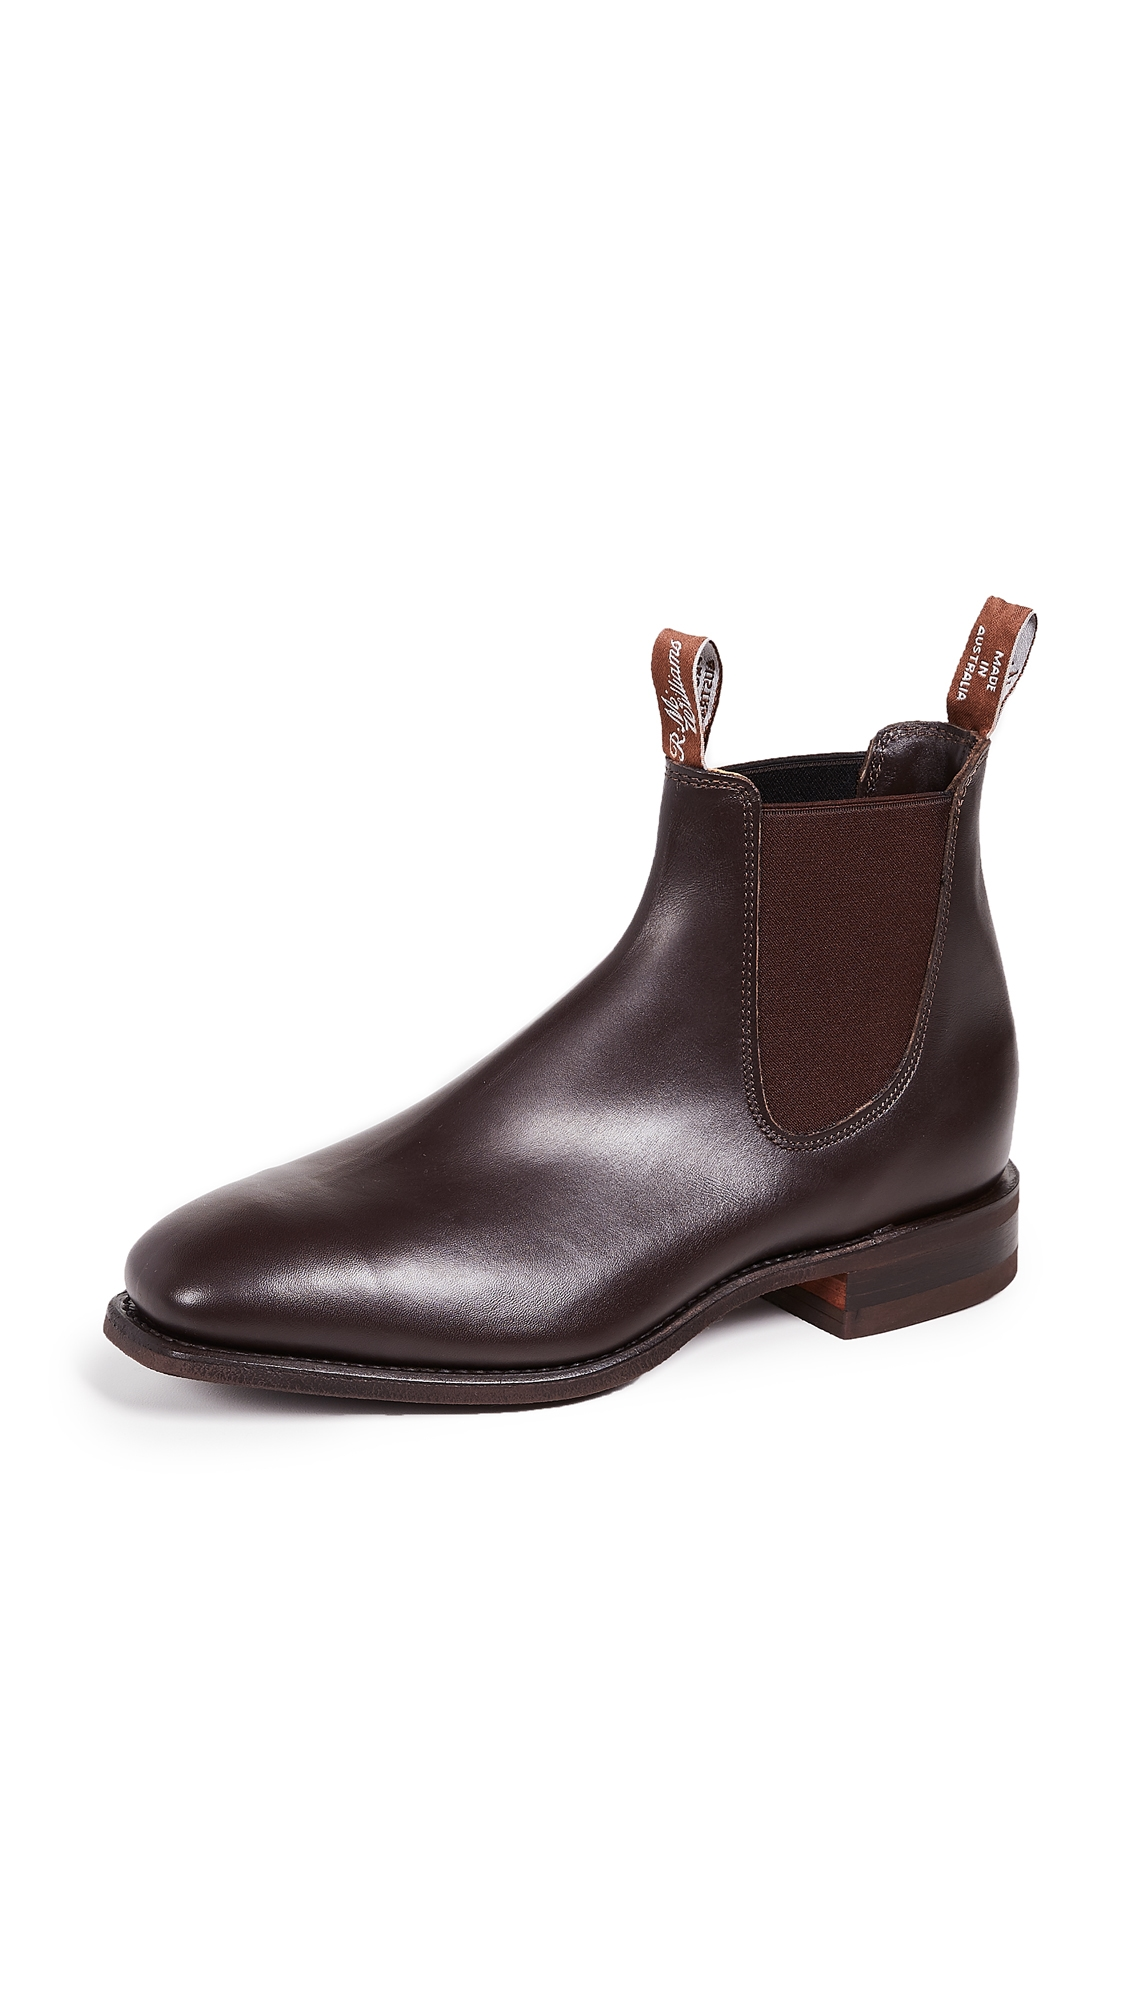 R.M.WILLIAMS COMFORT RM BOOTS